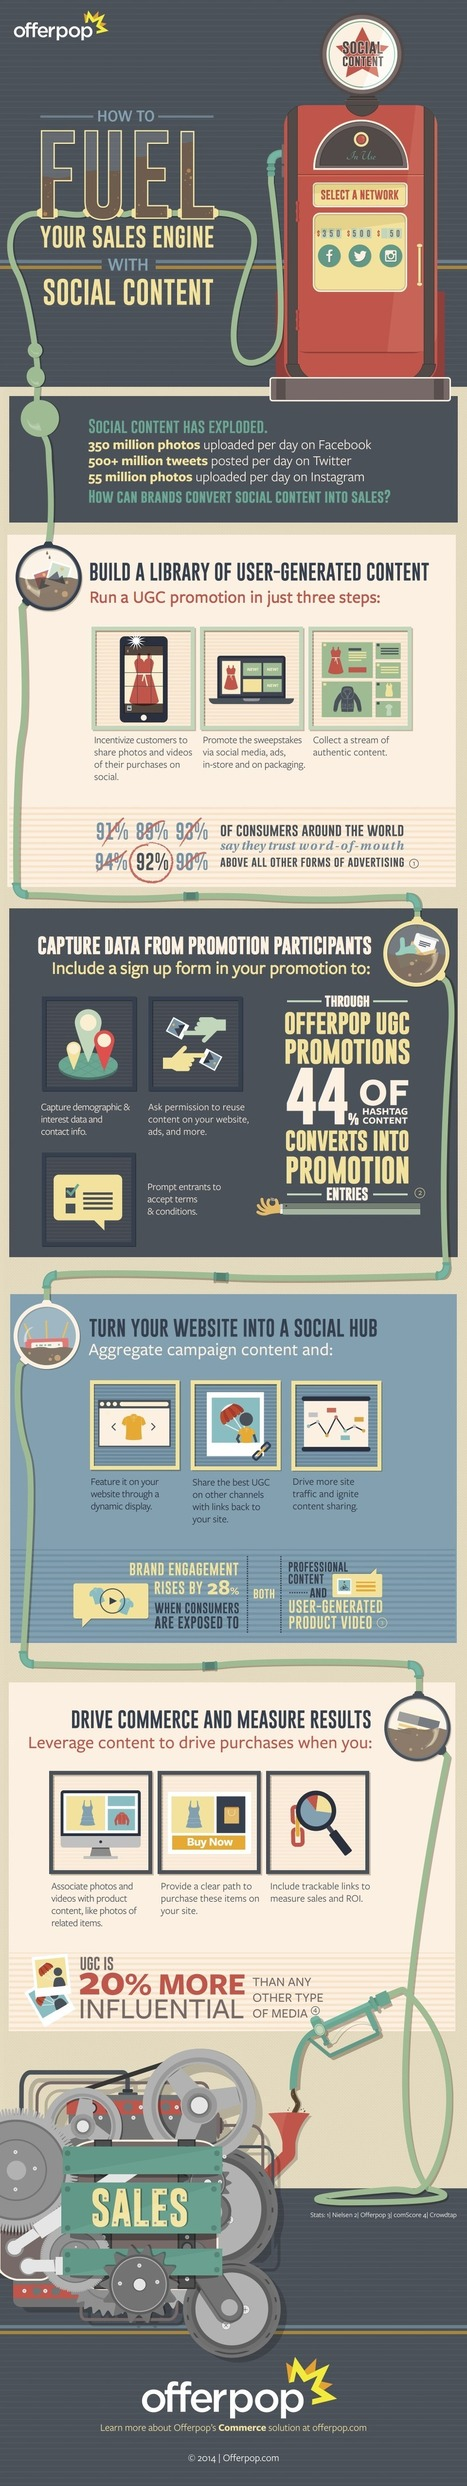 How to Fuel your Sales Engine with Social Content [INFOGRAPHIC] | Social Media and Web Infographics hh | Scoop.it